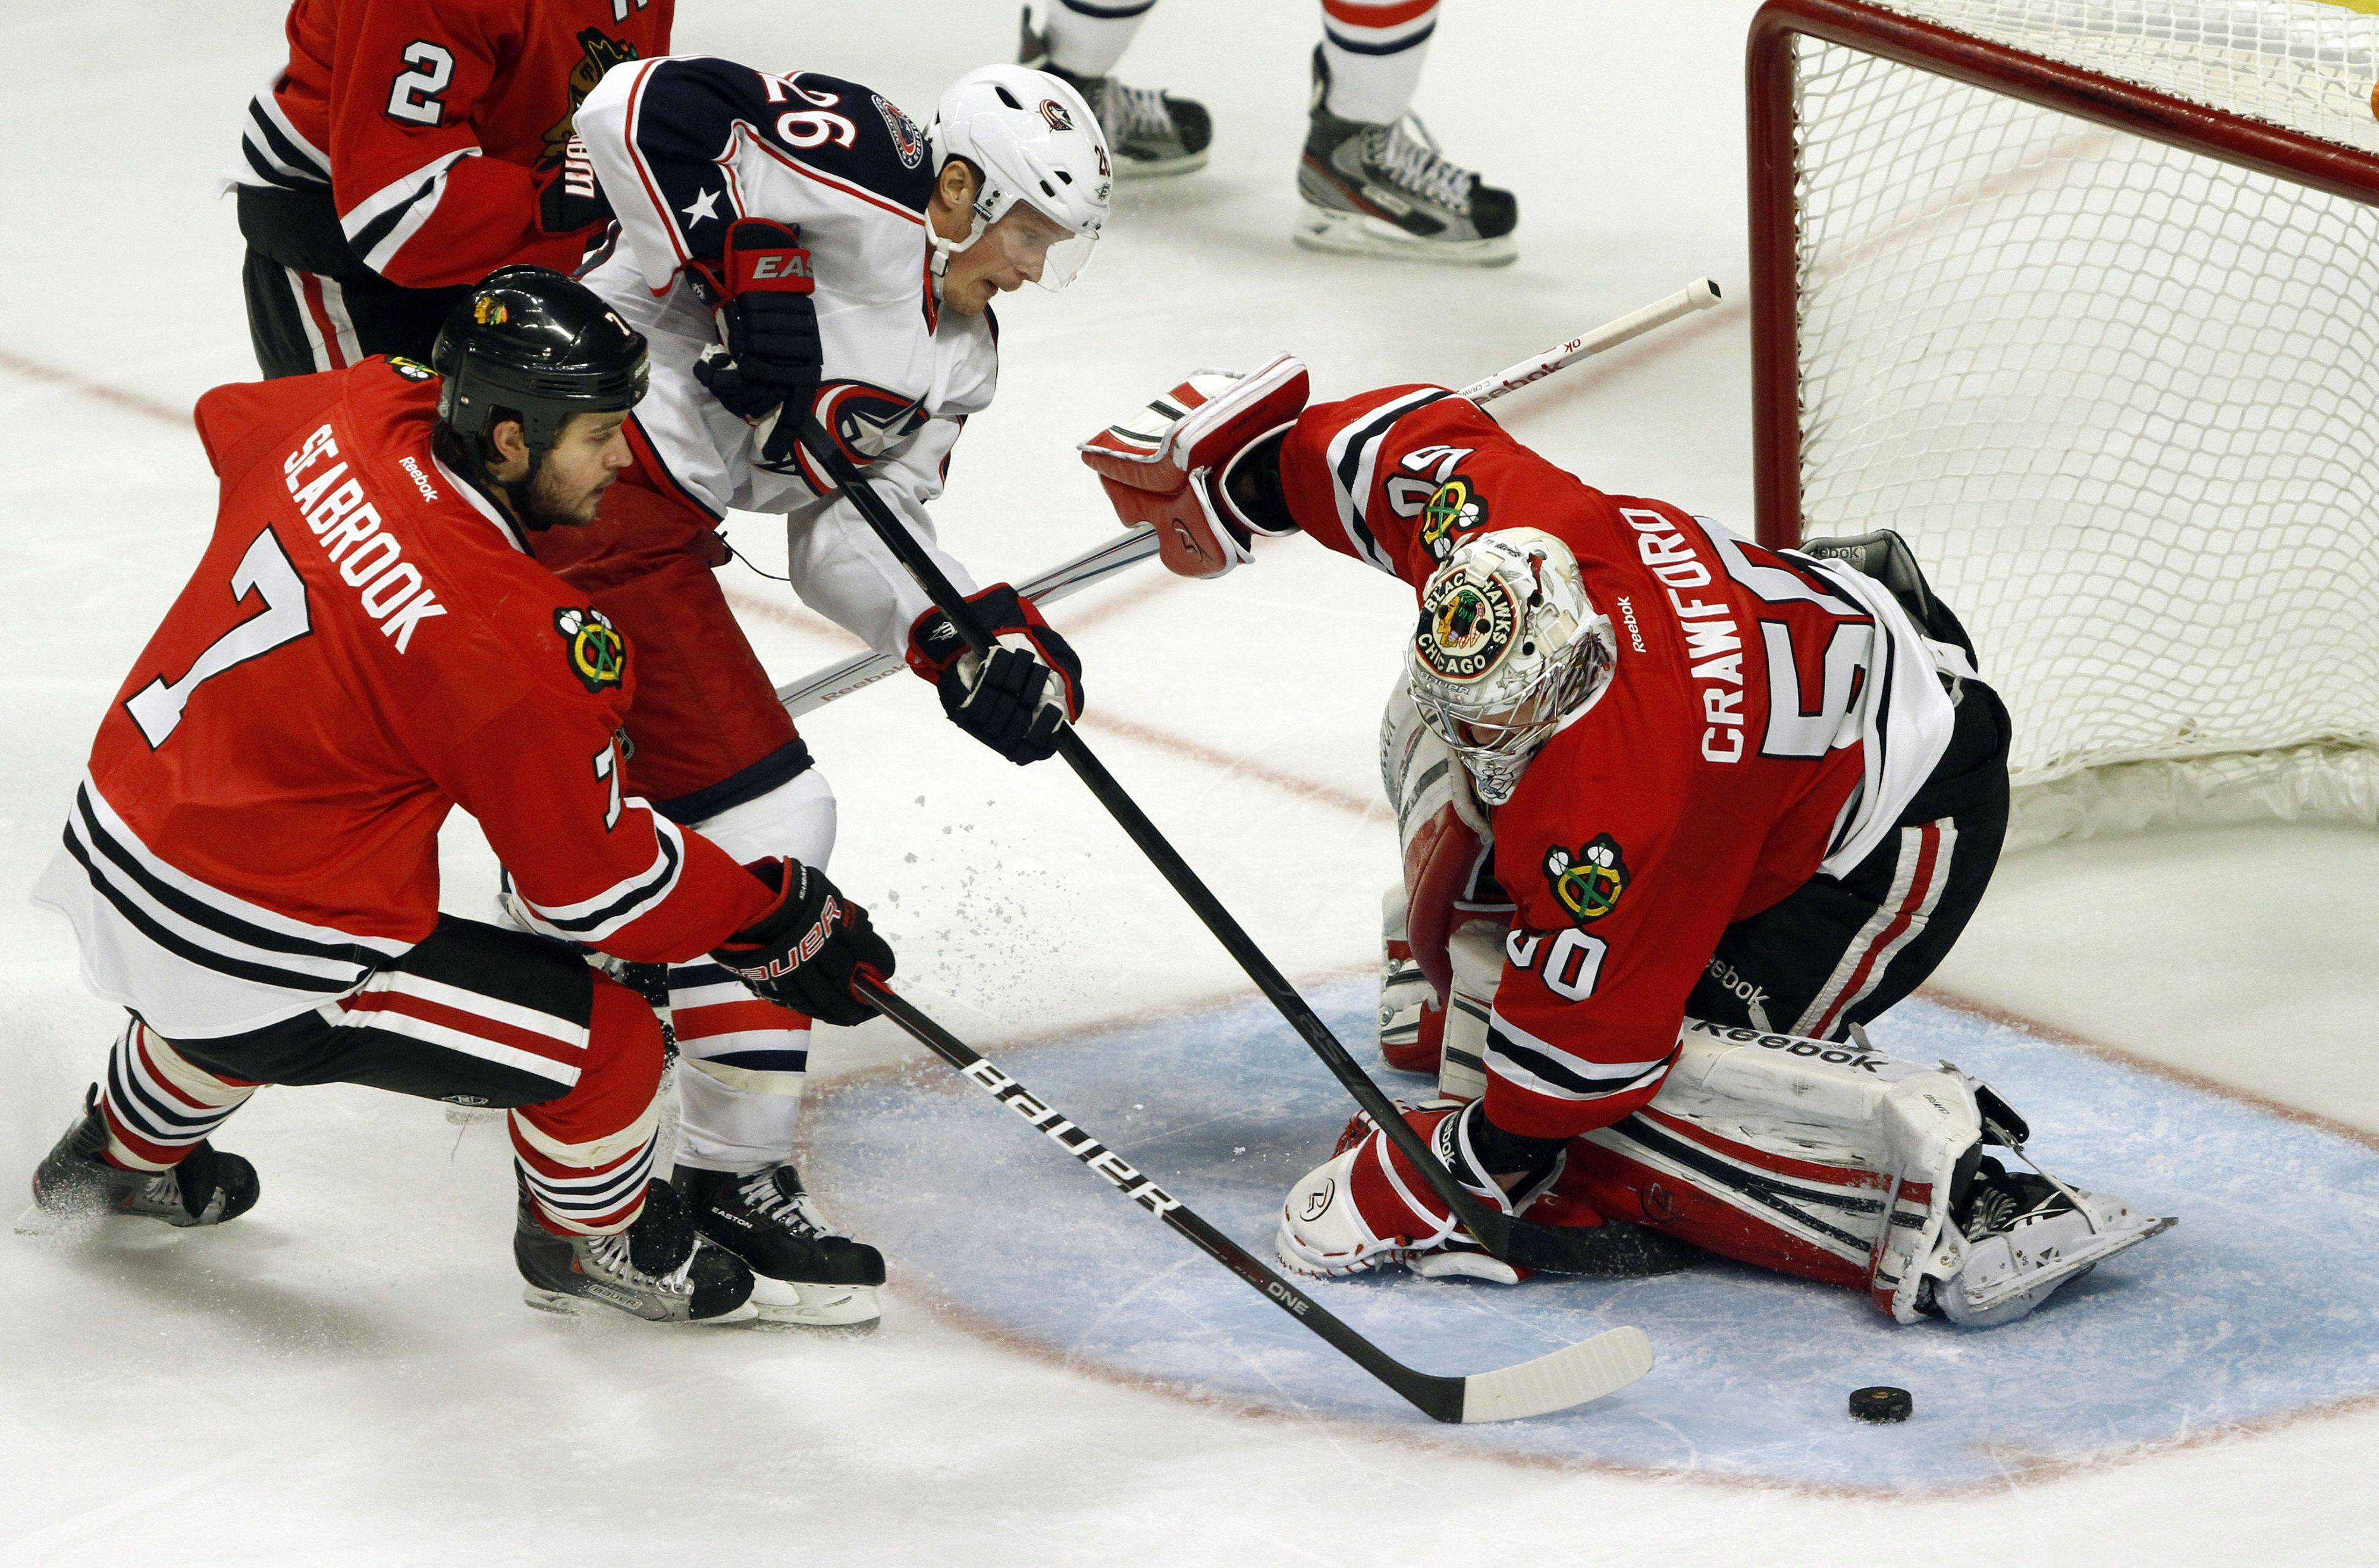 Chicago Blackhawks defenseman Brent Seabrook fights with Columbus Blue Jackets center Samuel Pahlsson as Chicago Blackhawks goalie Corey Crawford makes the save in the third period during their game Monday night at the United Center in Chicago.